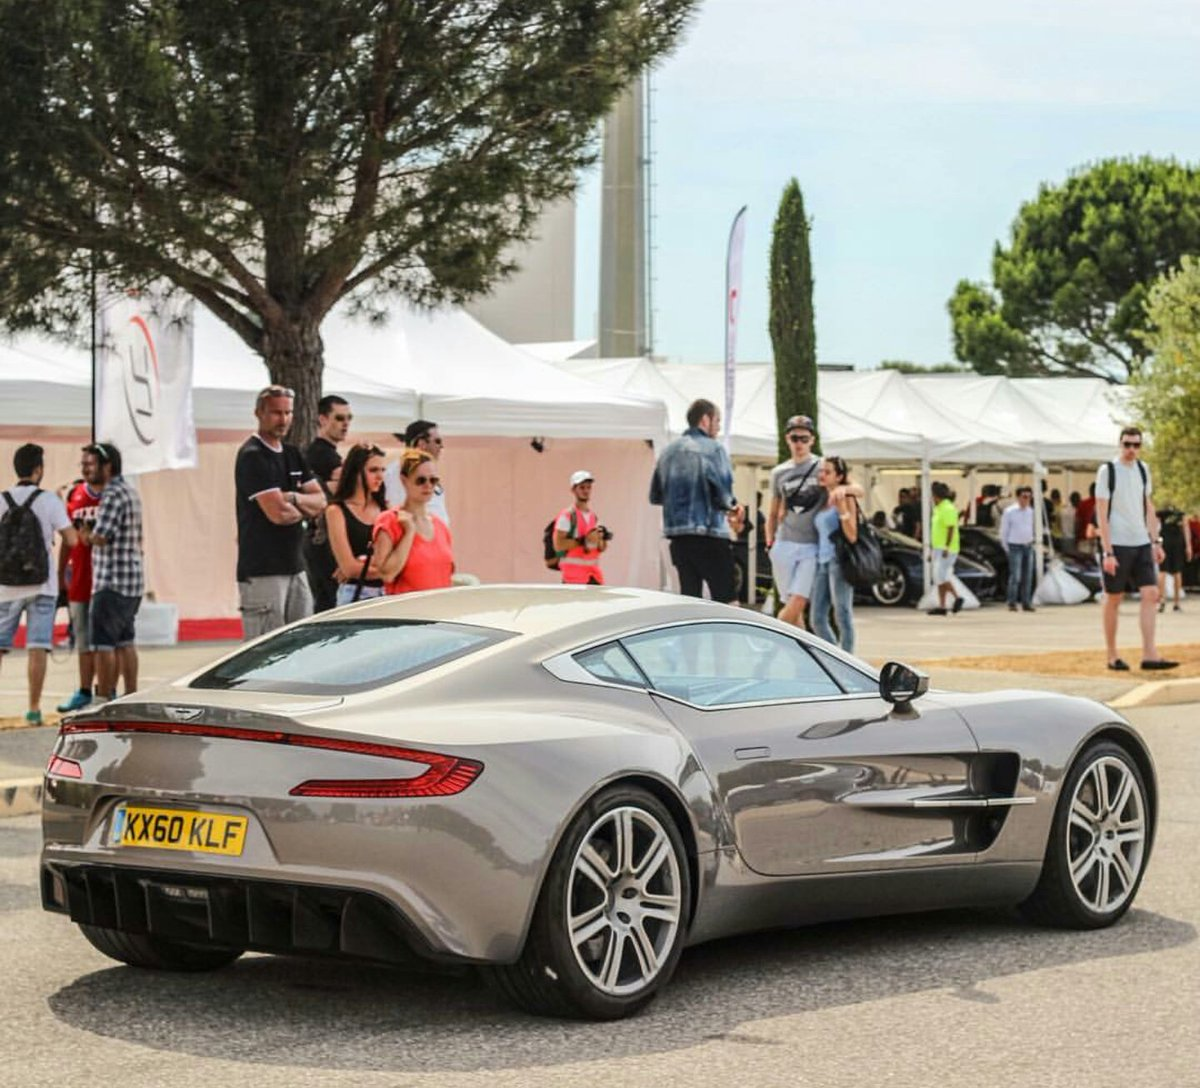 Delicieux Aston Martin Club (@AstonMartinOC) | Twitter